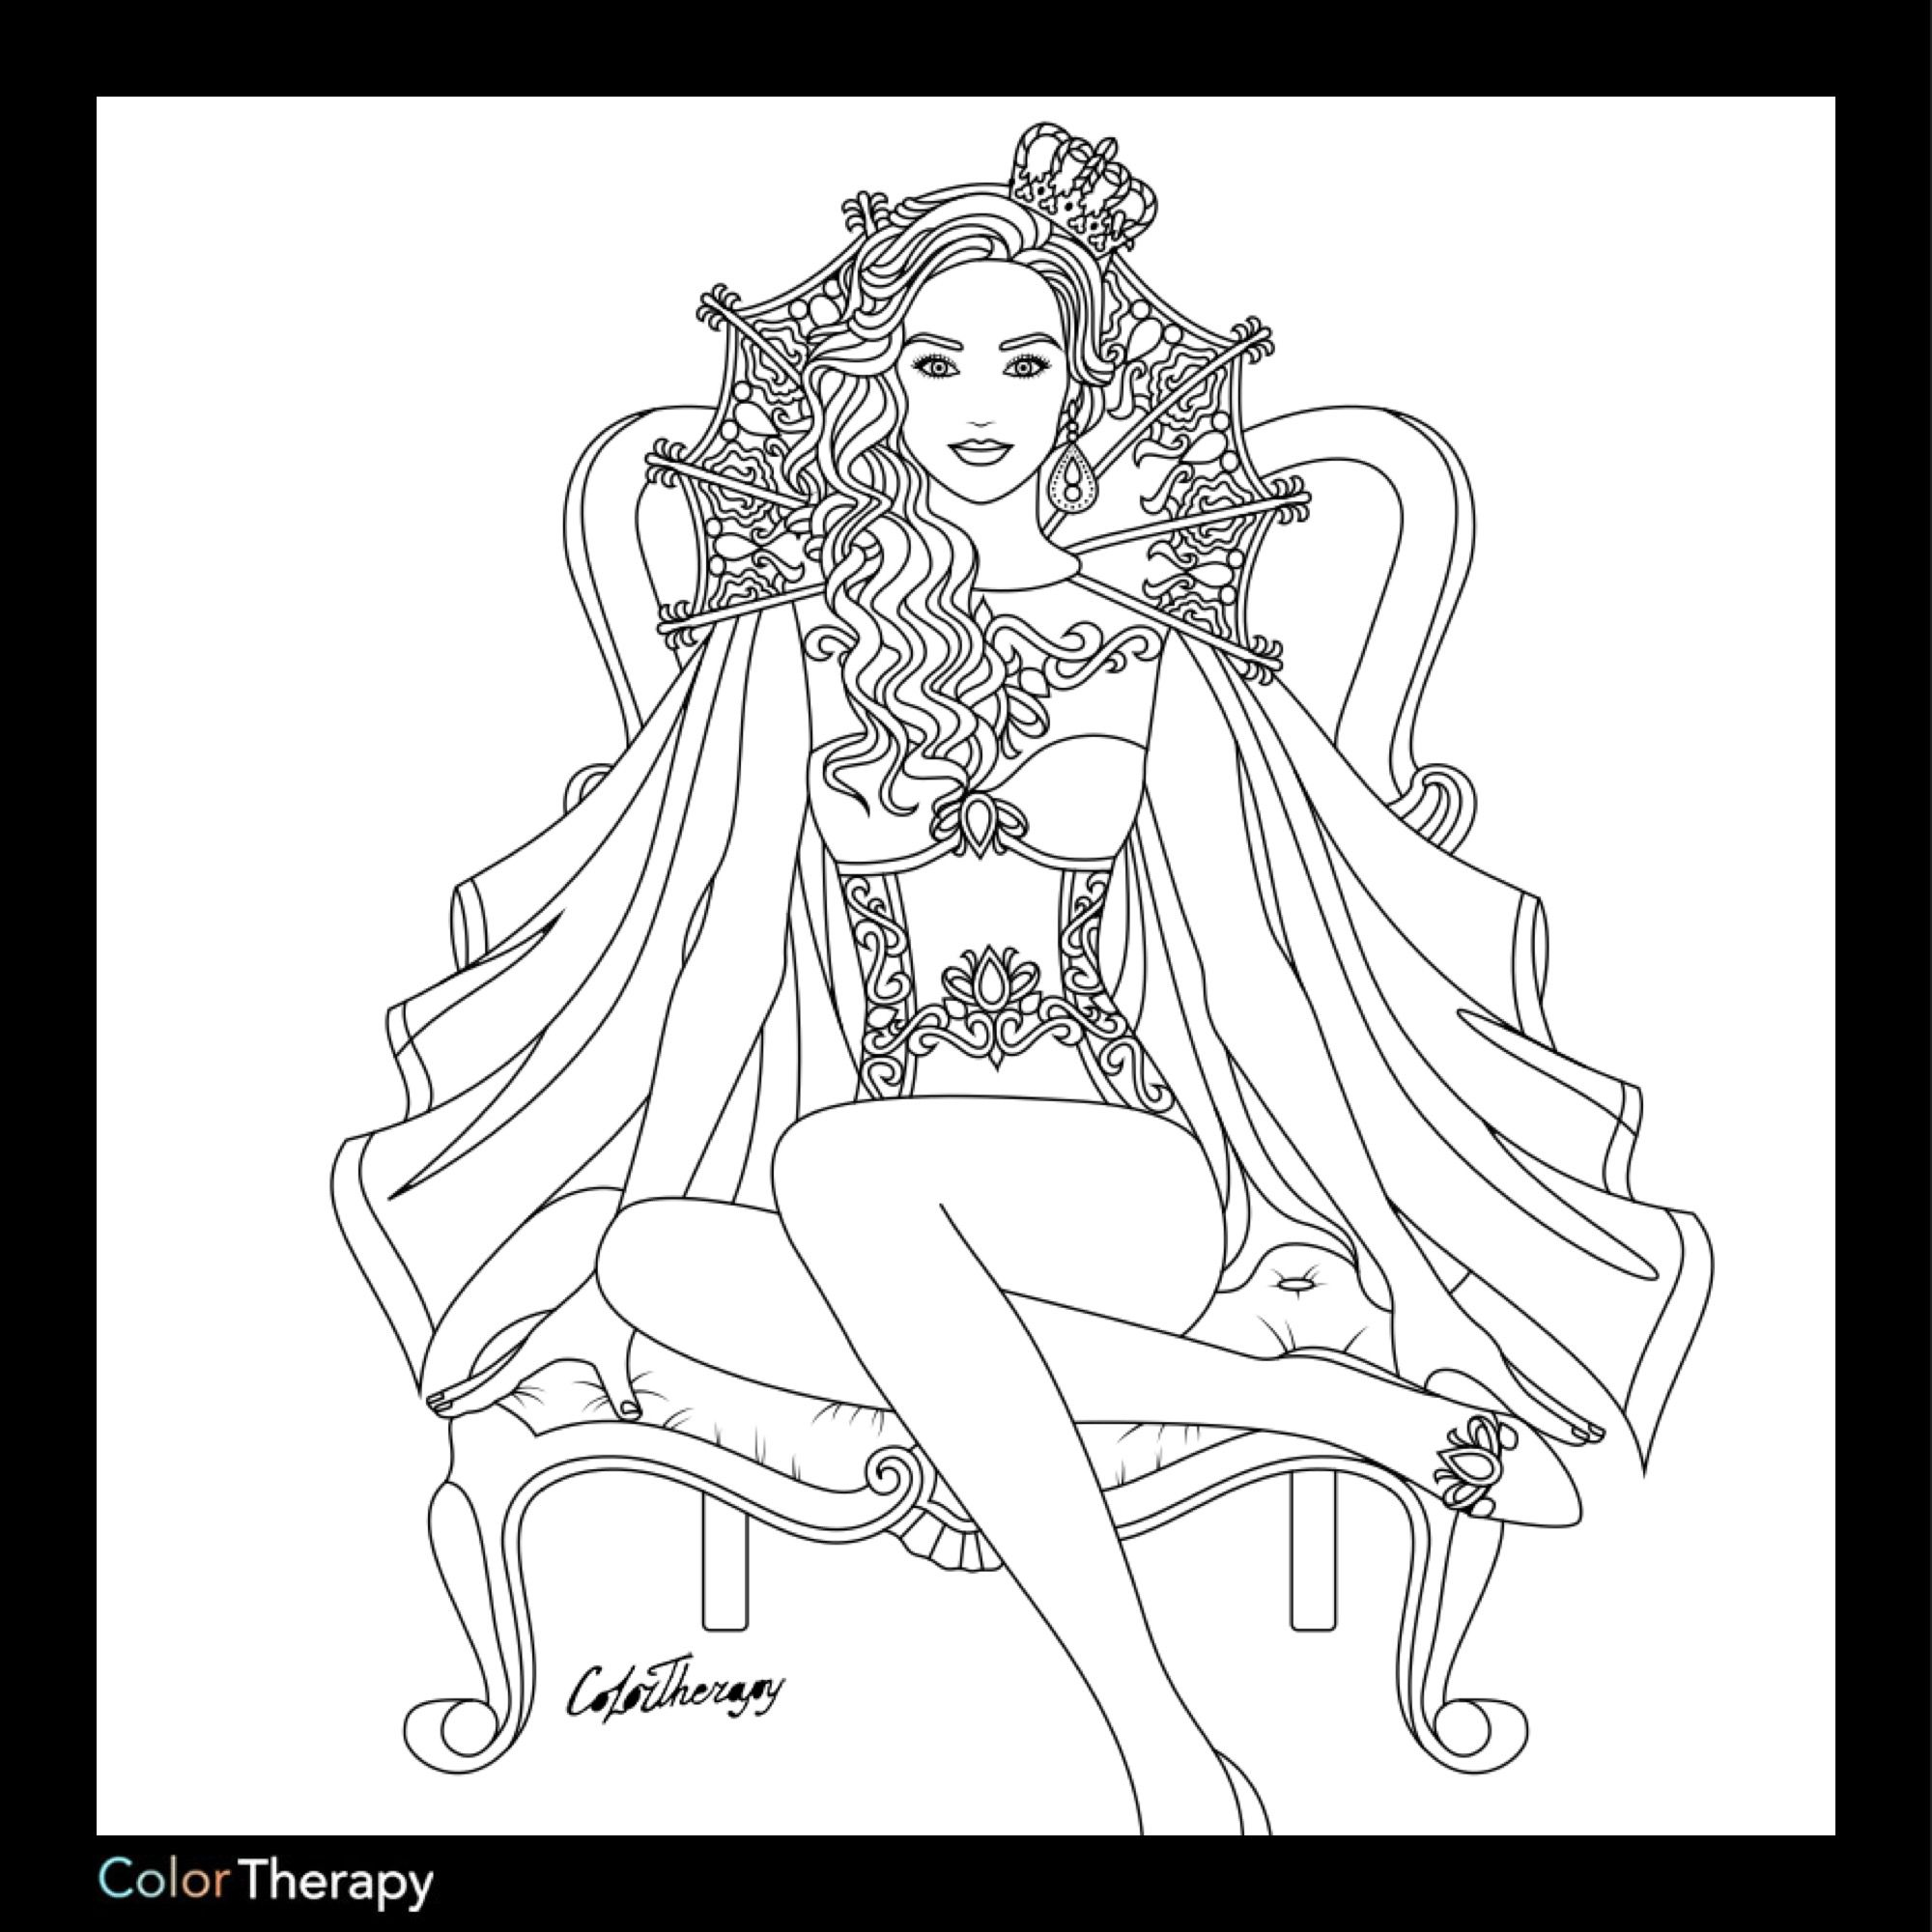 queen coloring pictures beauty queen coloring page mermaid coloring pages pictures queen coloring